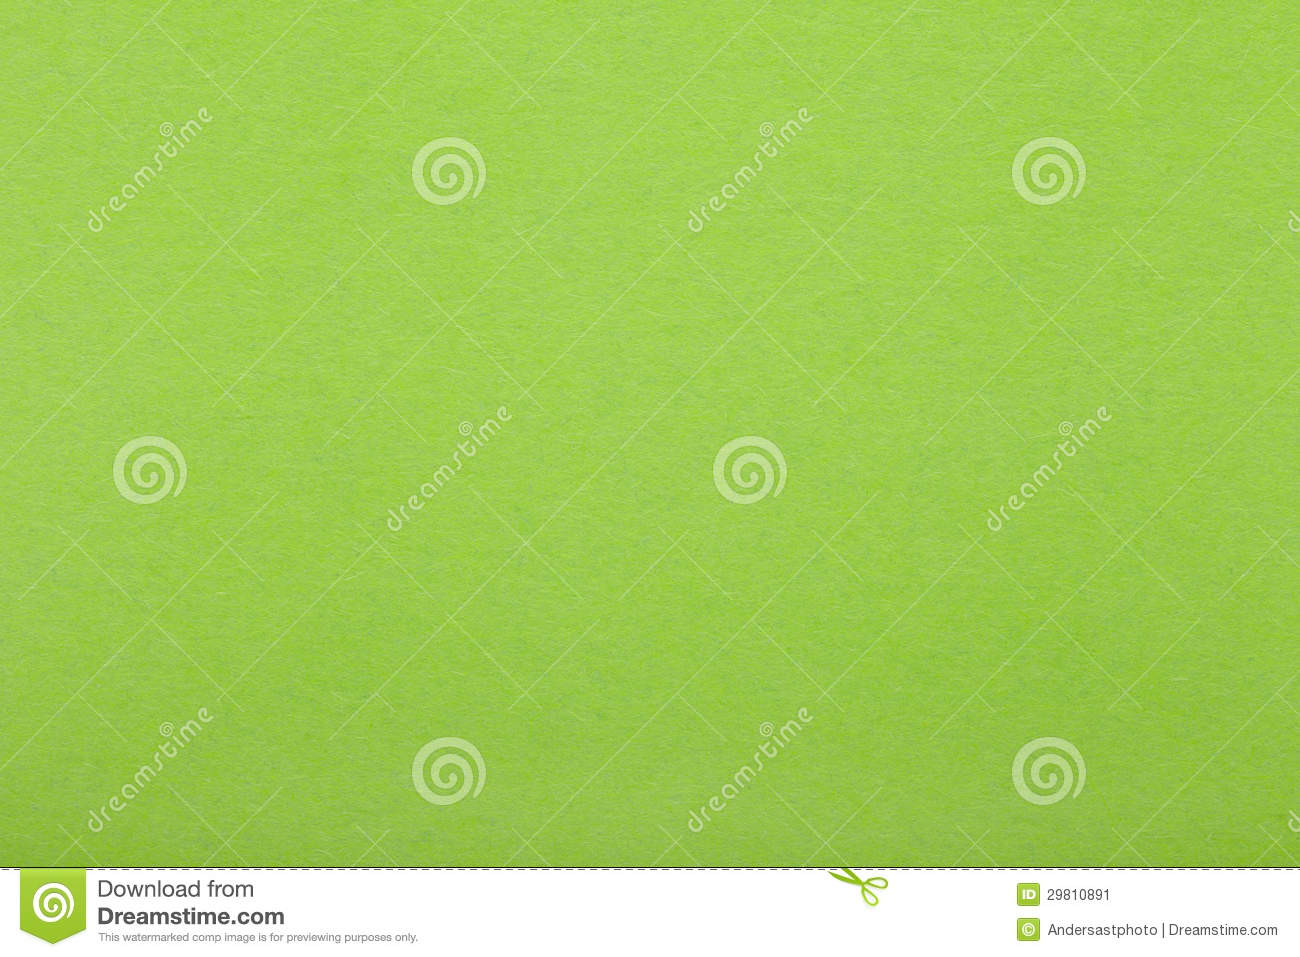 Green Paper Texture Background Stock Image - Image: 29810891